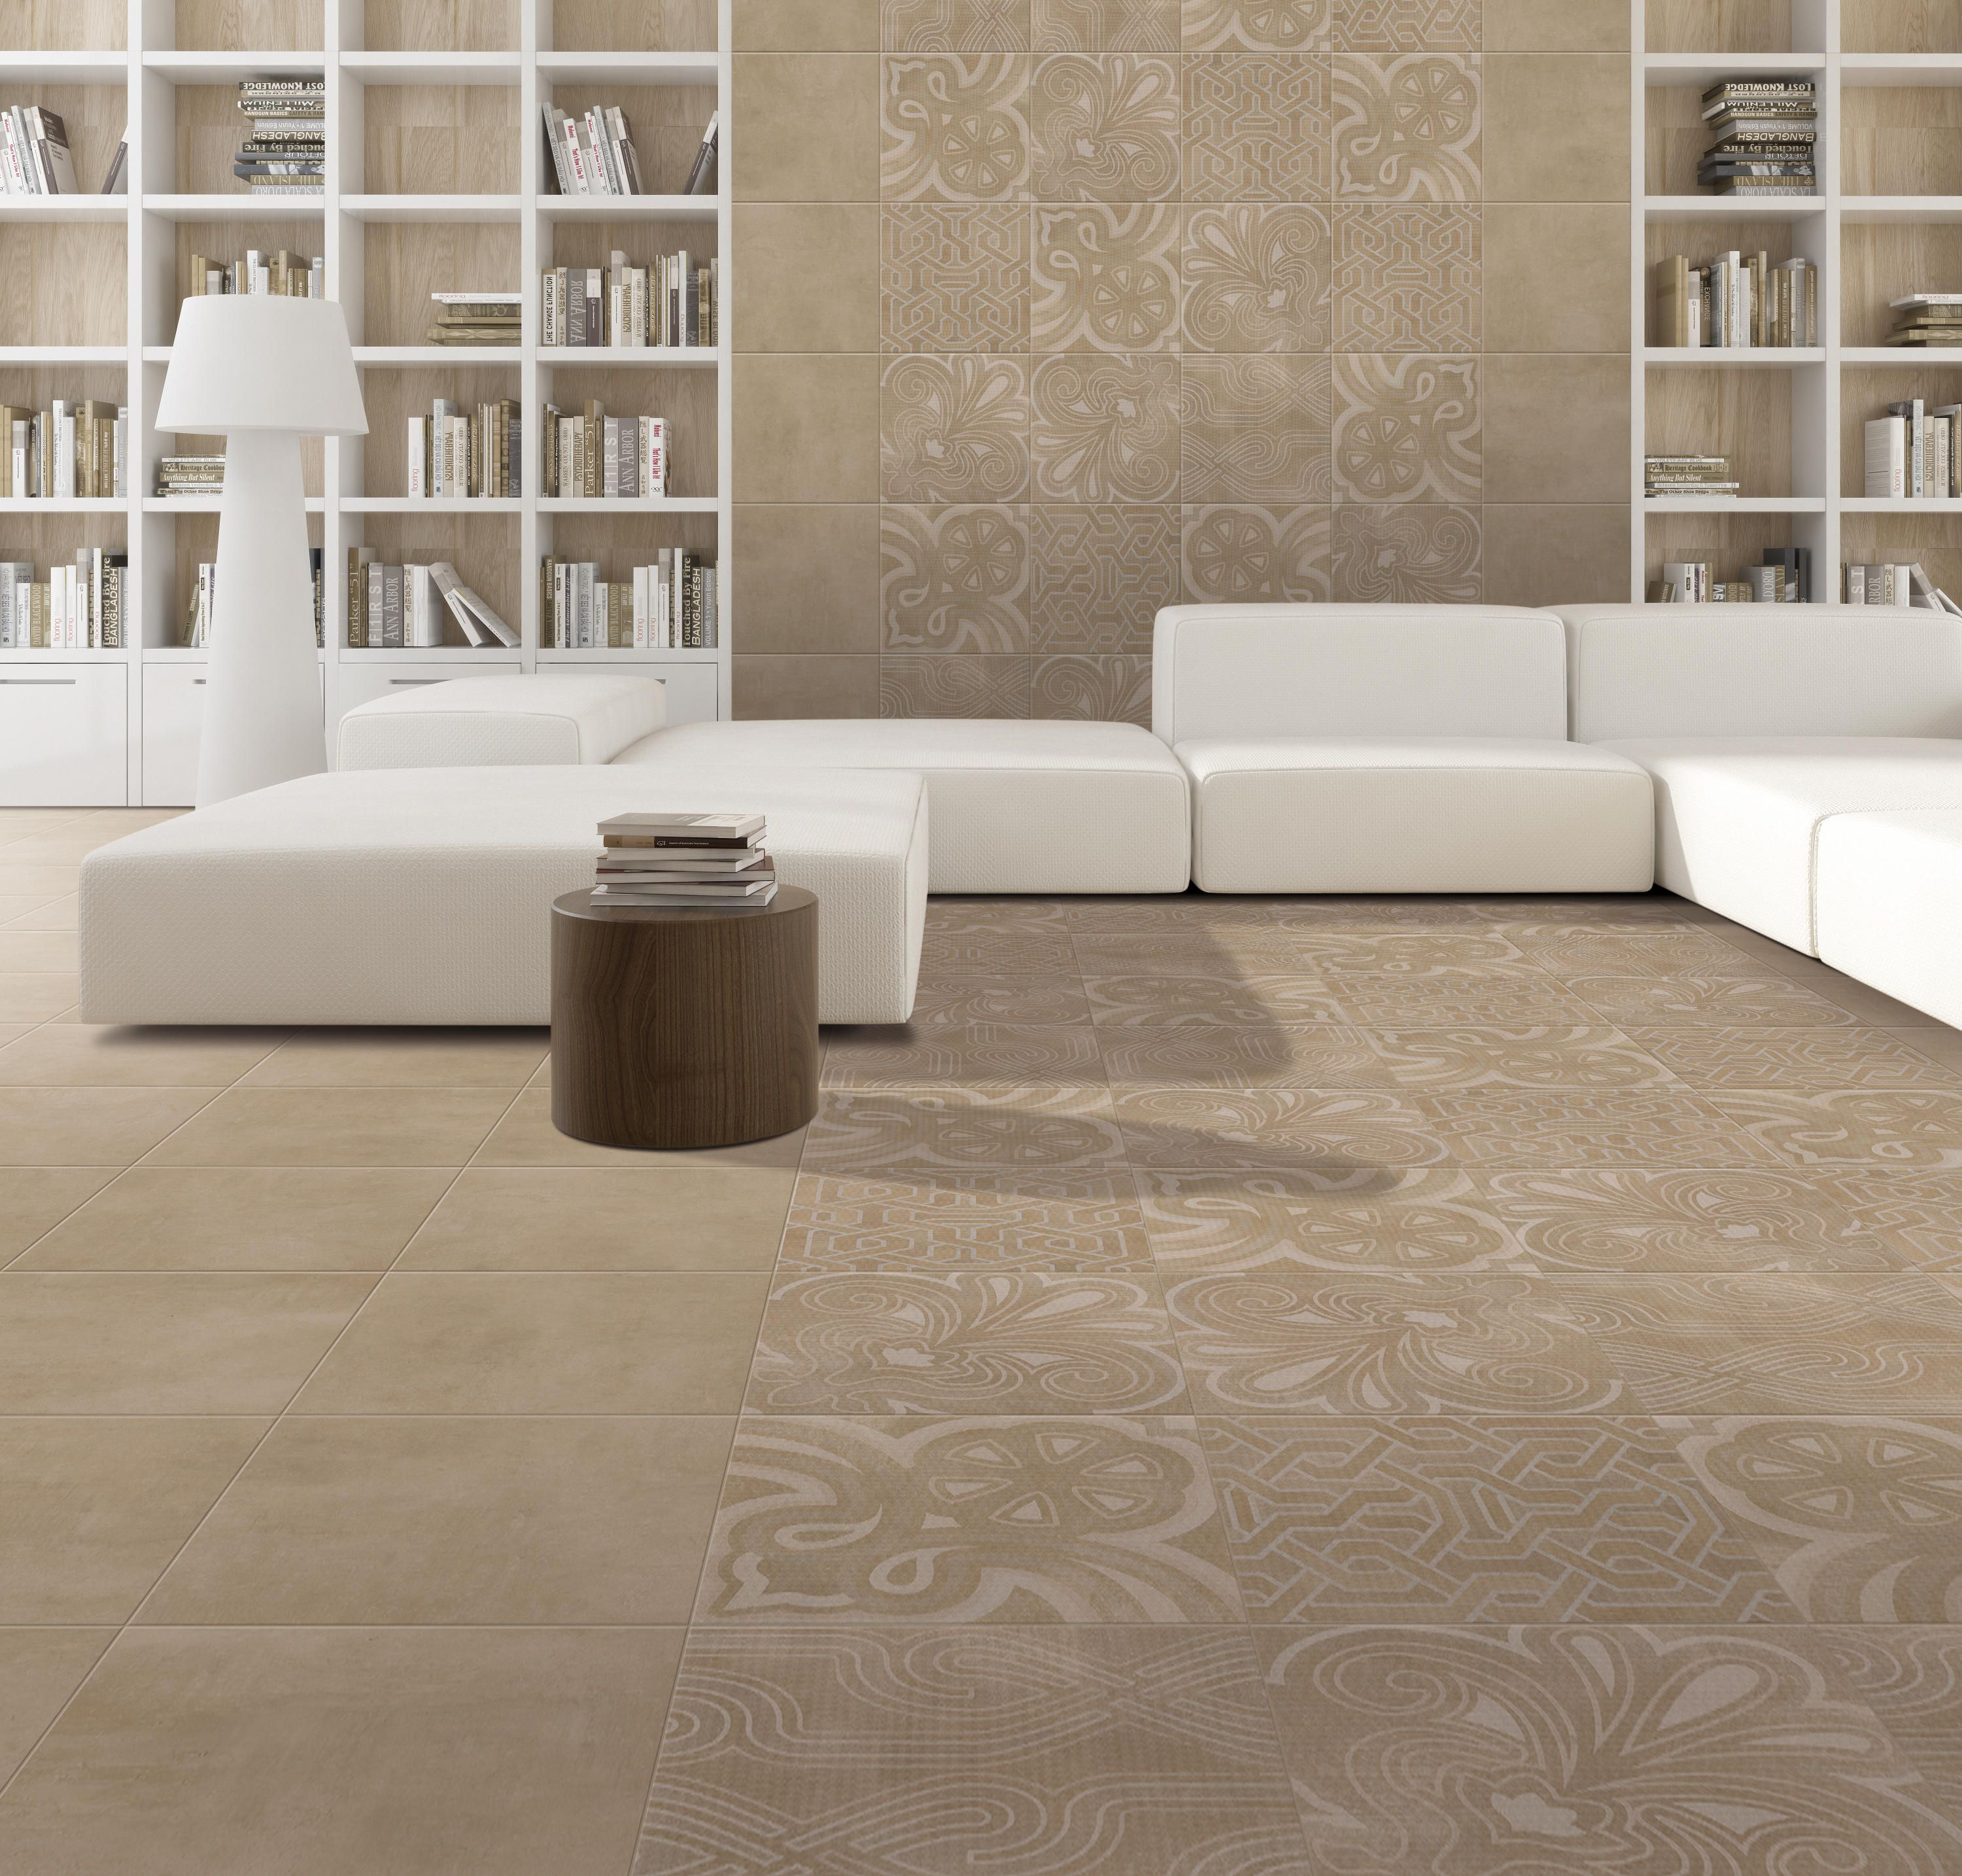 All About Big Apple Decor Baker Beige By Ape Ceramica On